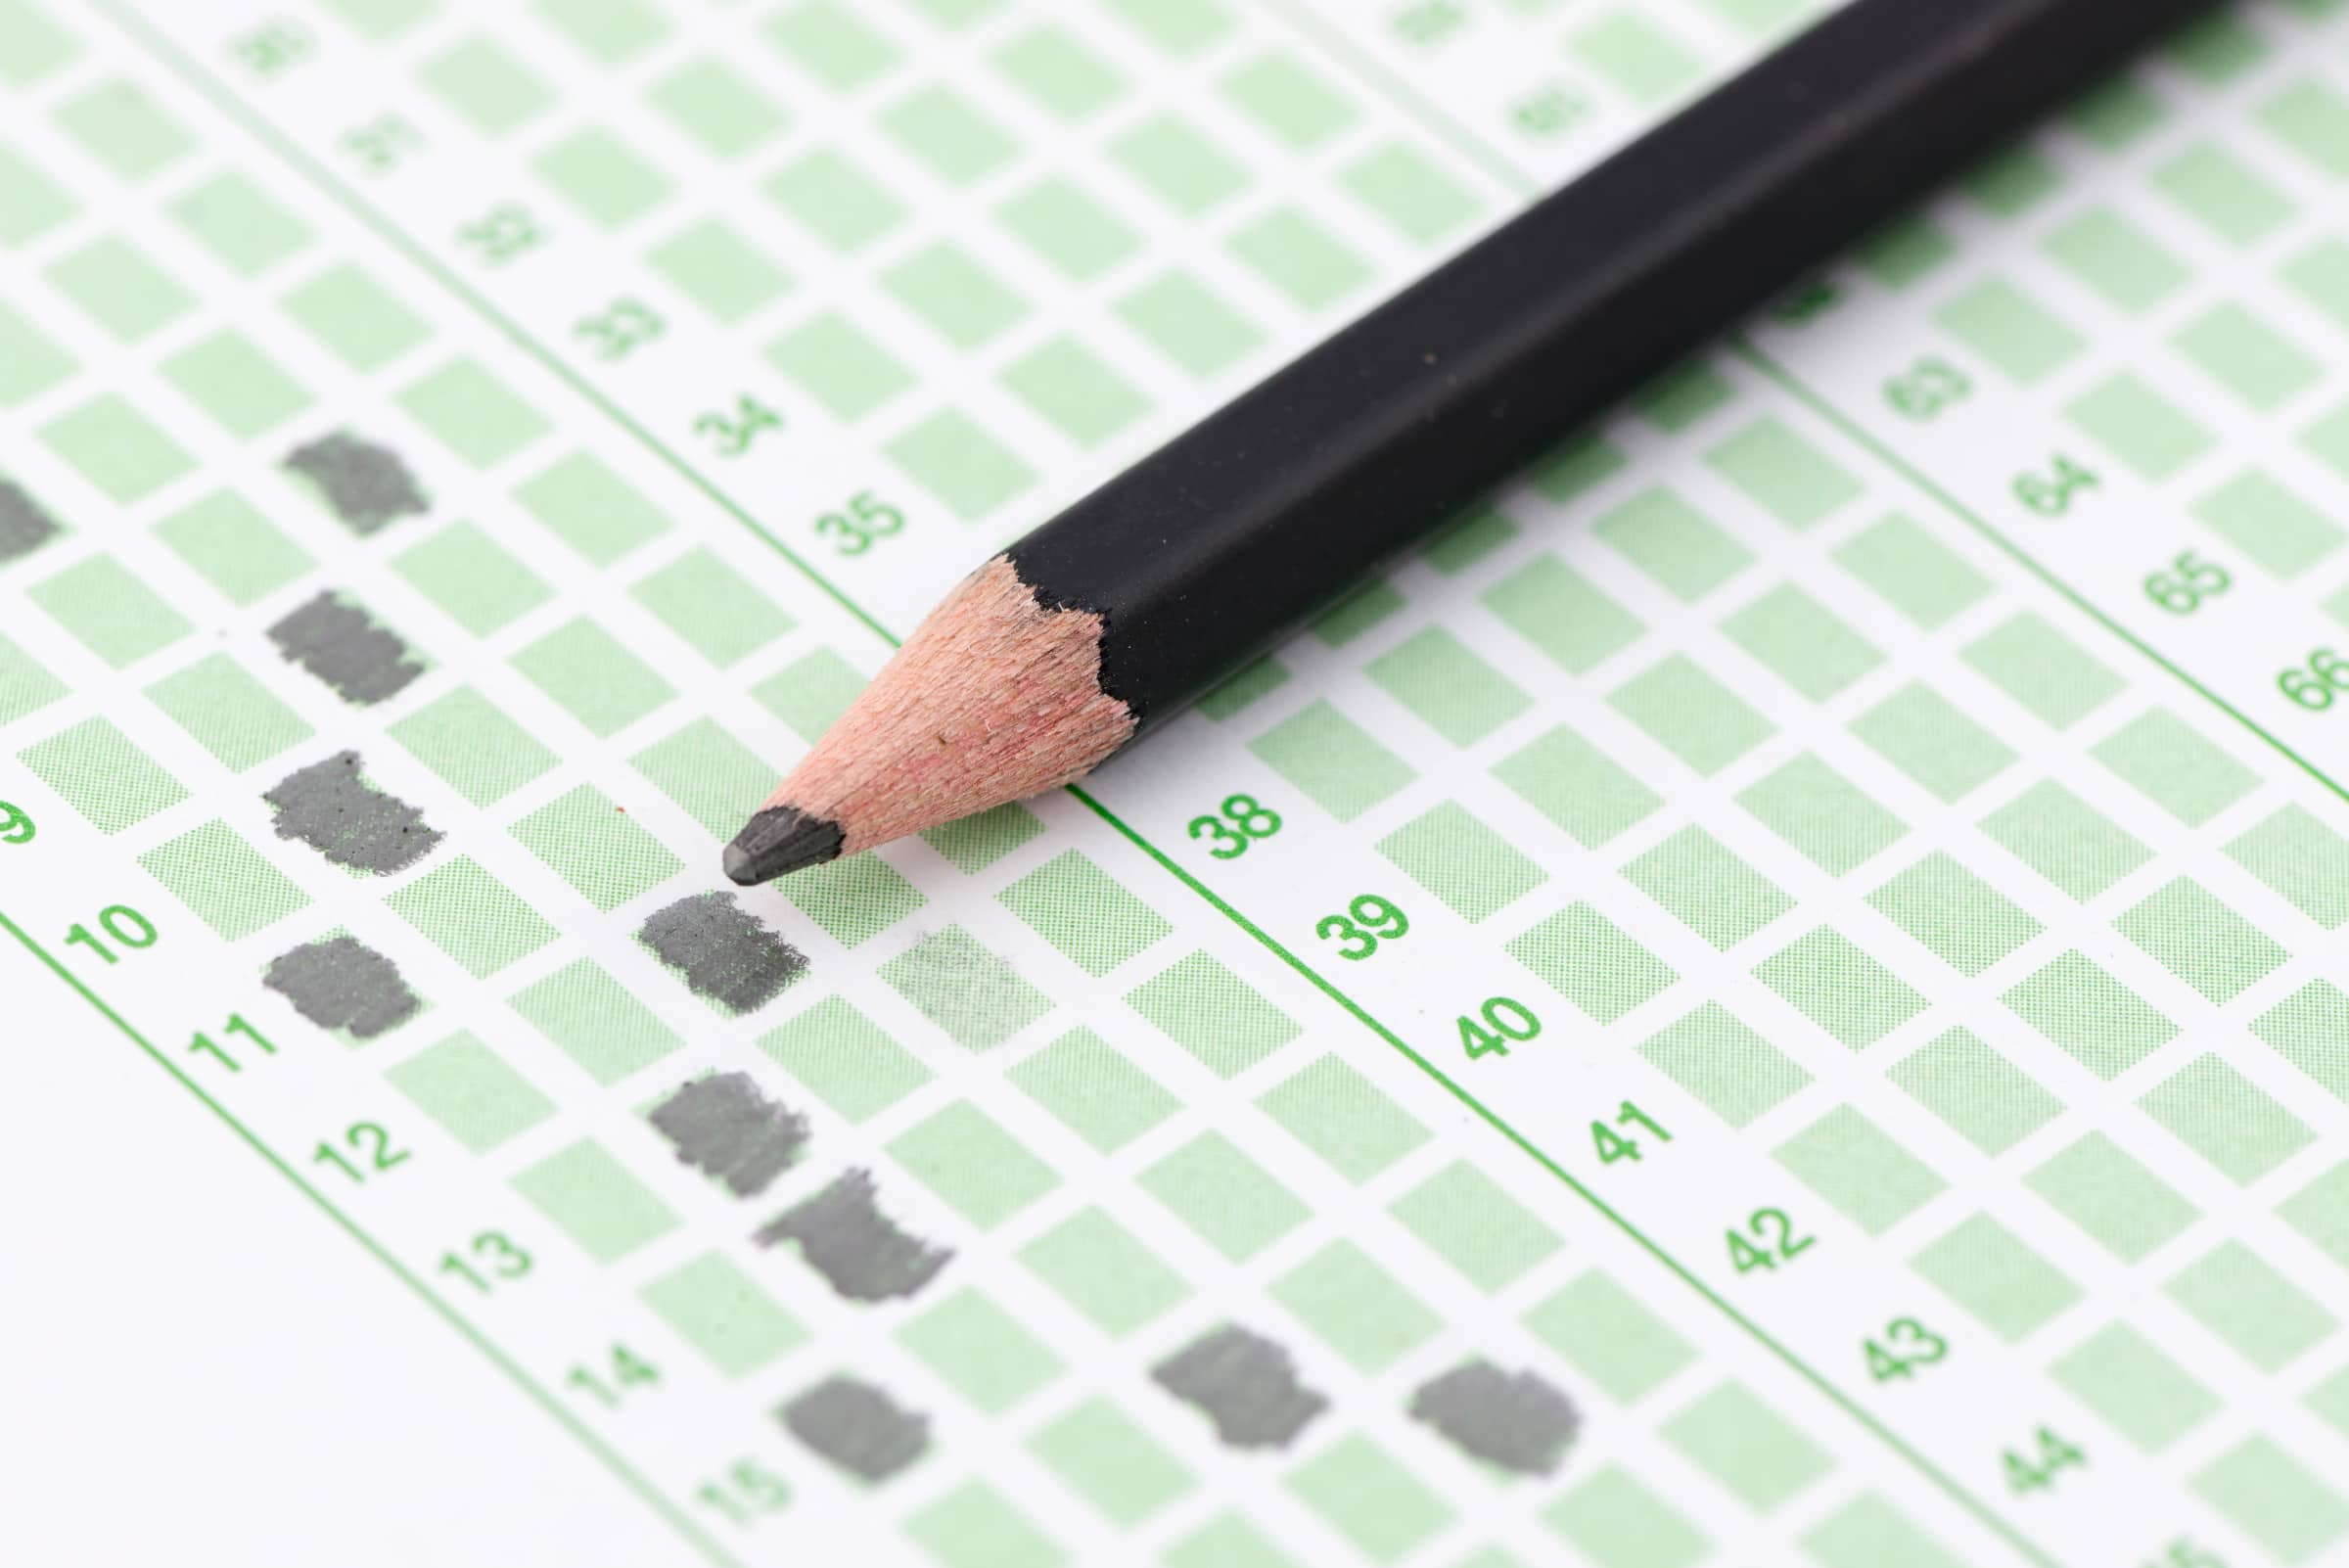 Pencil and answer sheet